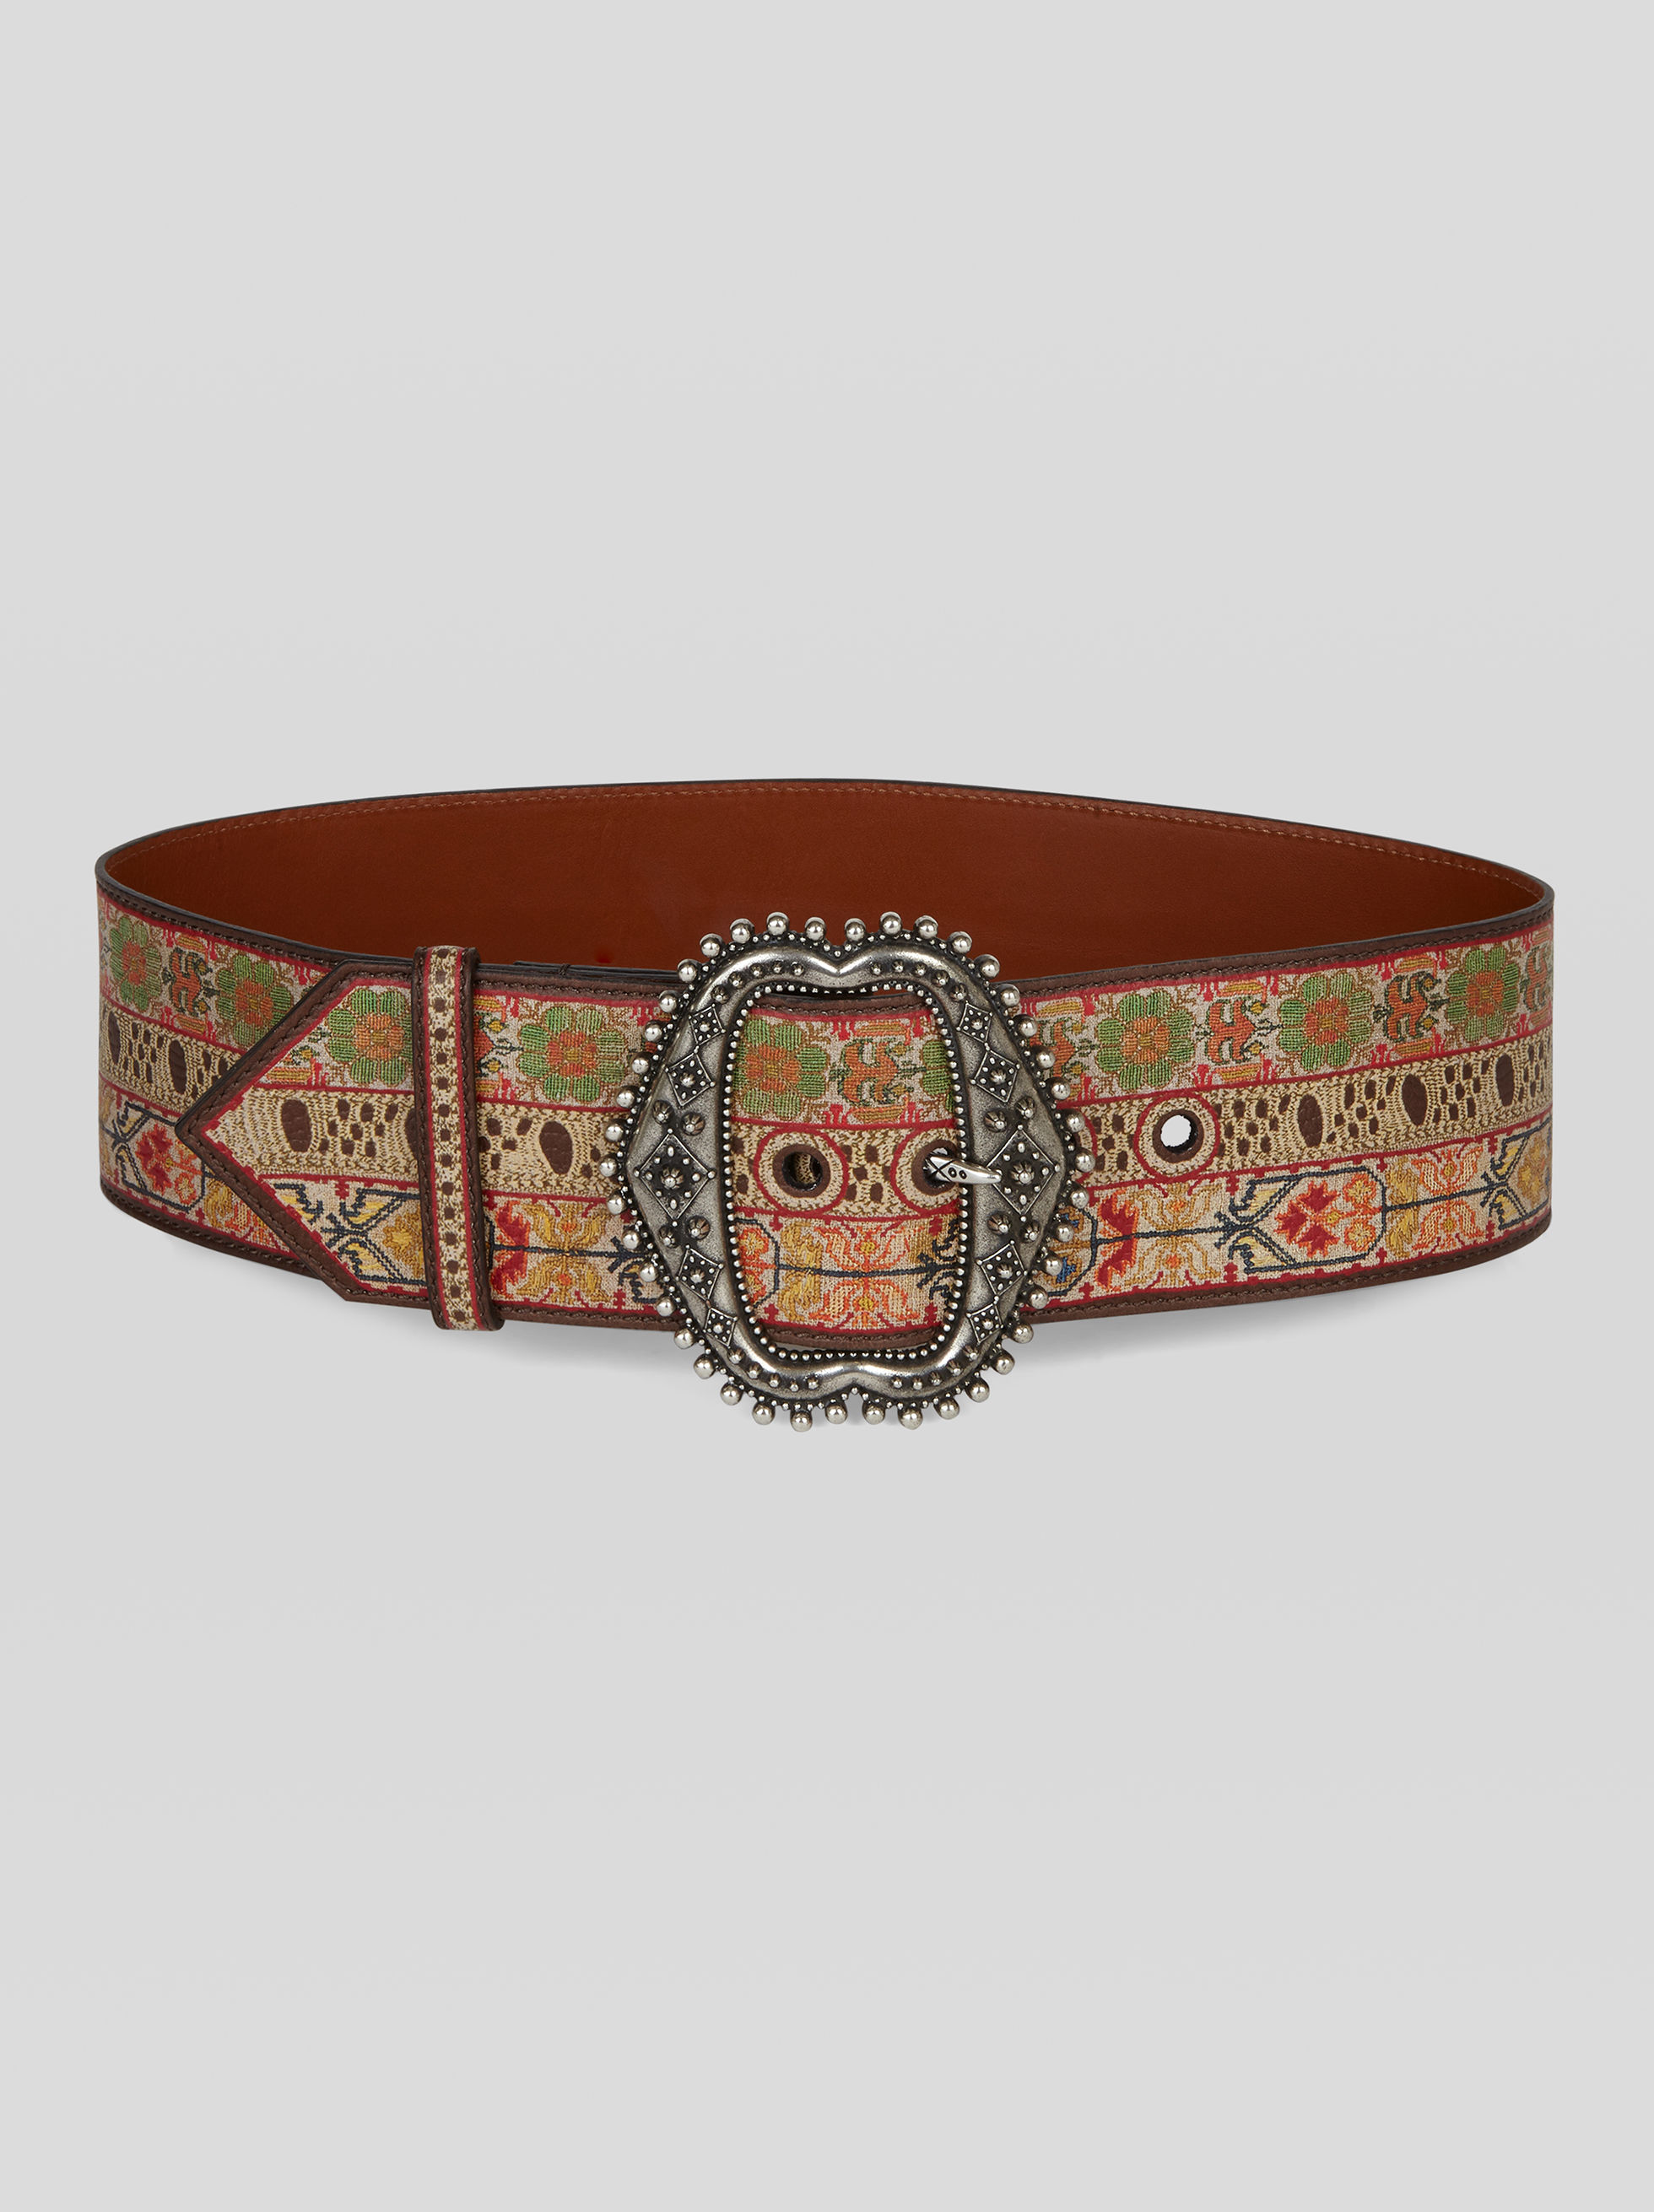 PRINTED LEATHER BELT